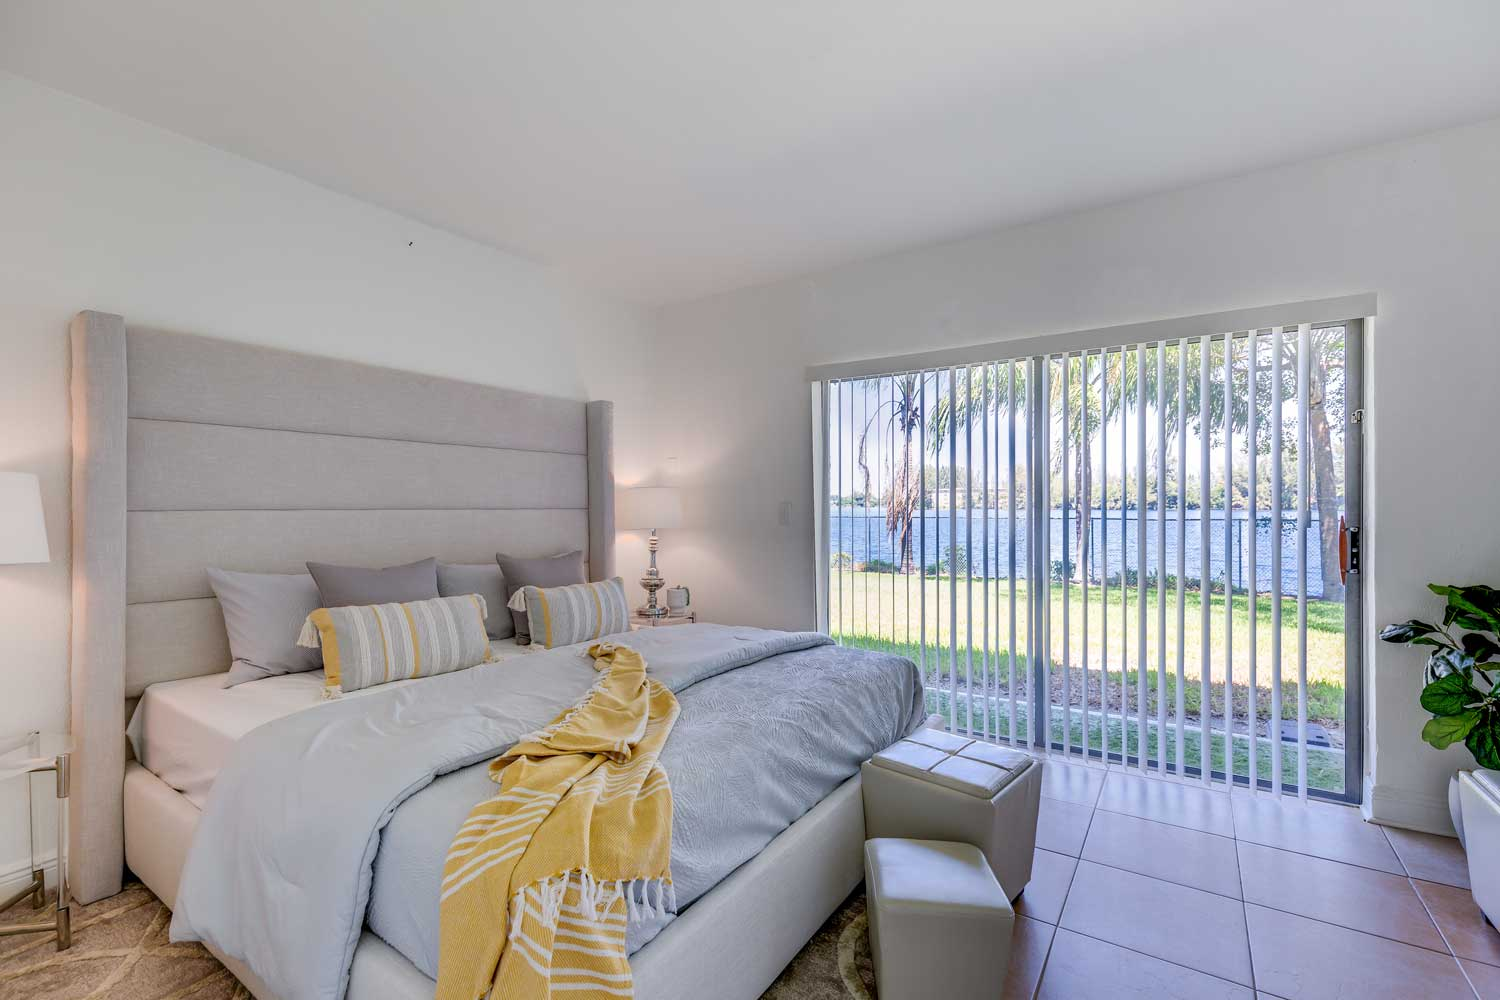 One Bedroom Floor Plans at New Castle Lake in Miami, FL